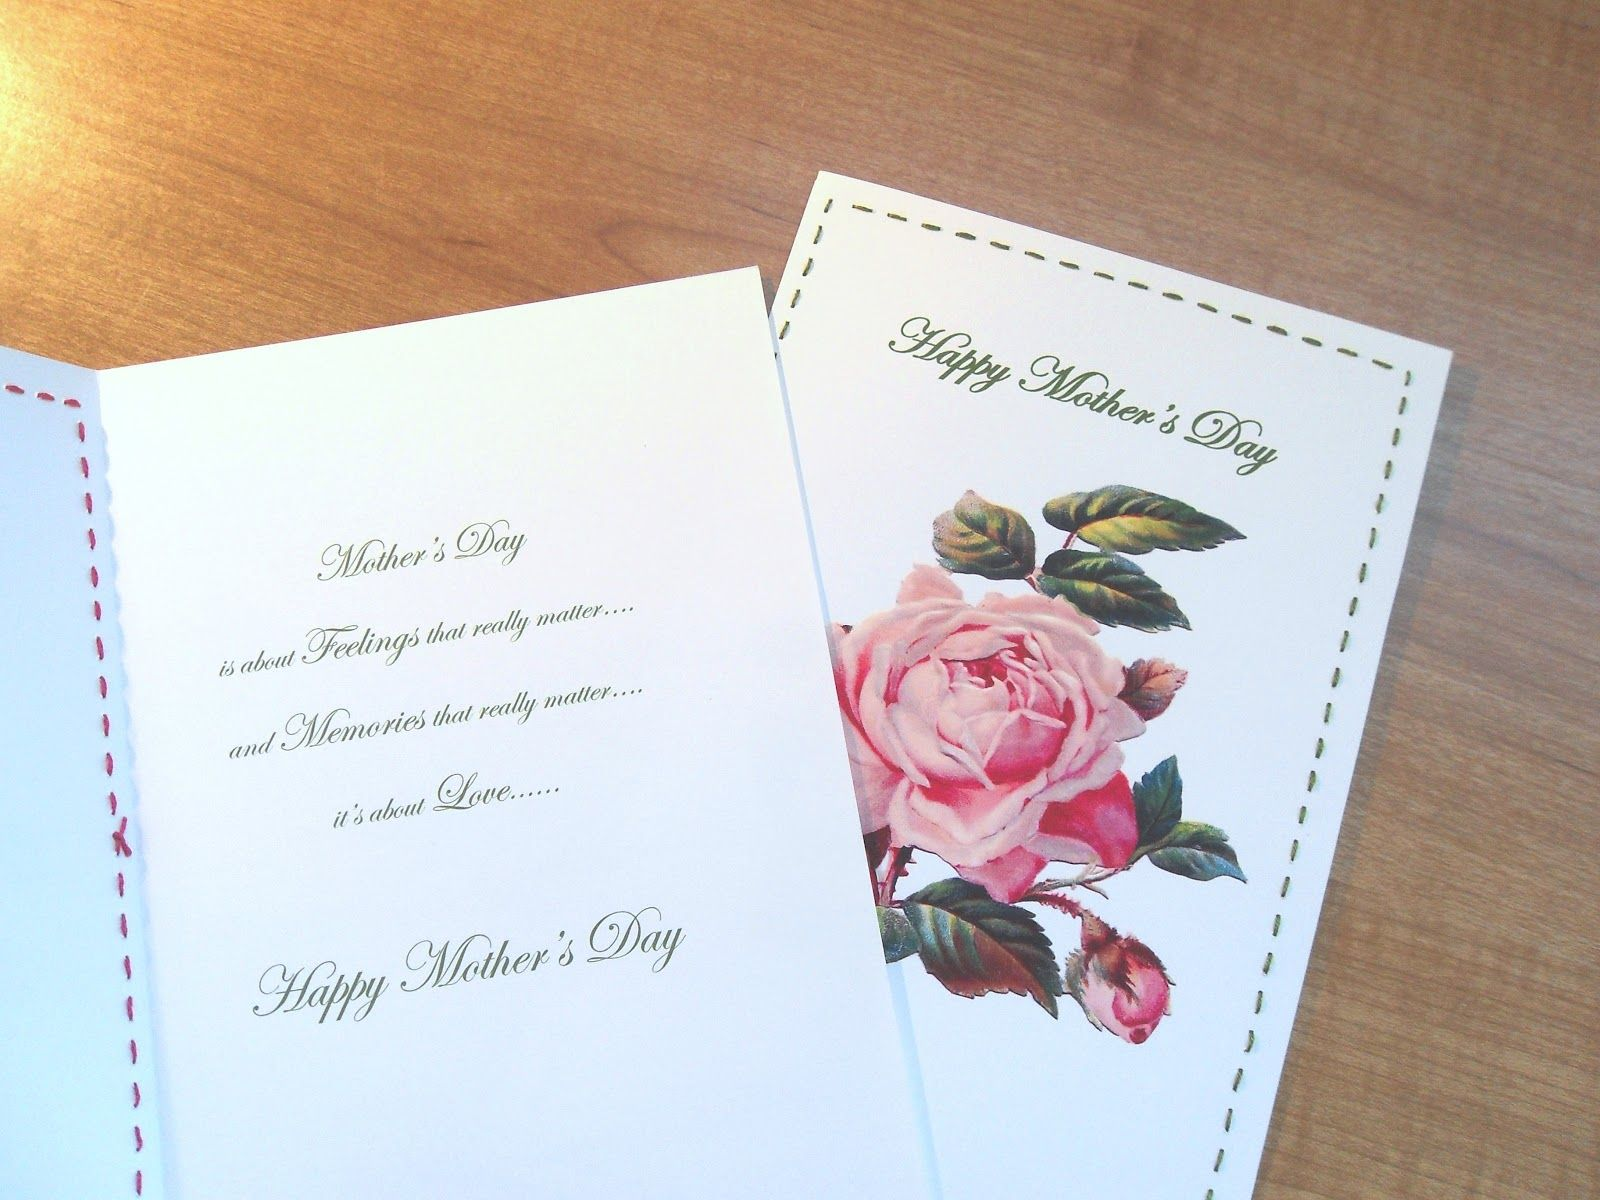 printing verses for hand made cards - Google Search | Making Cards ...